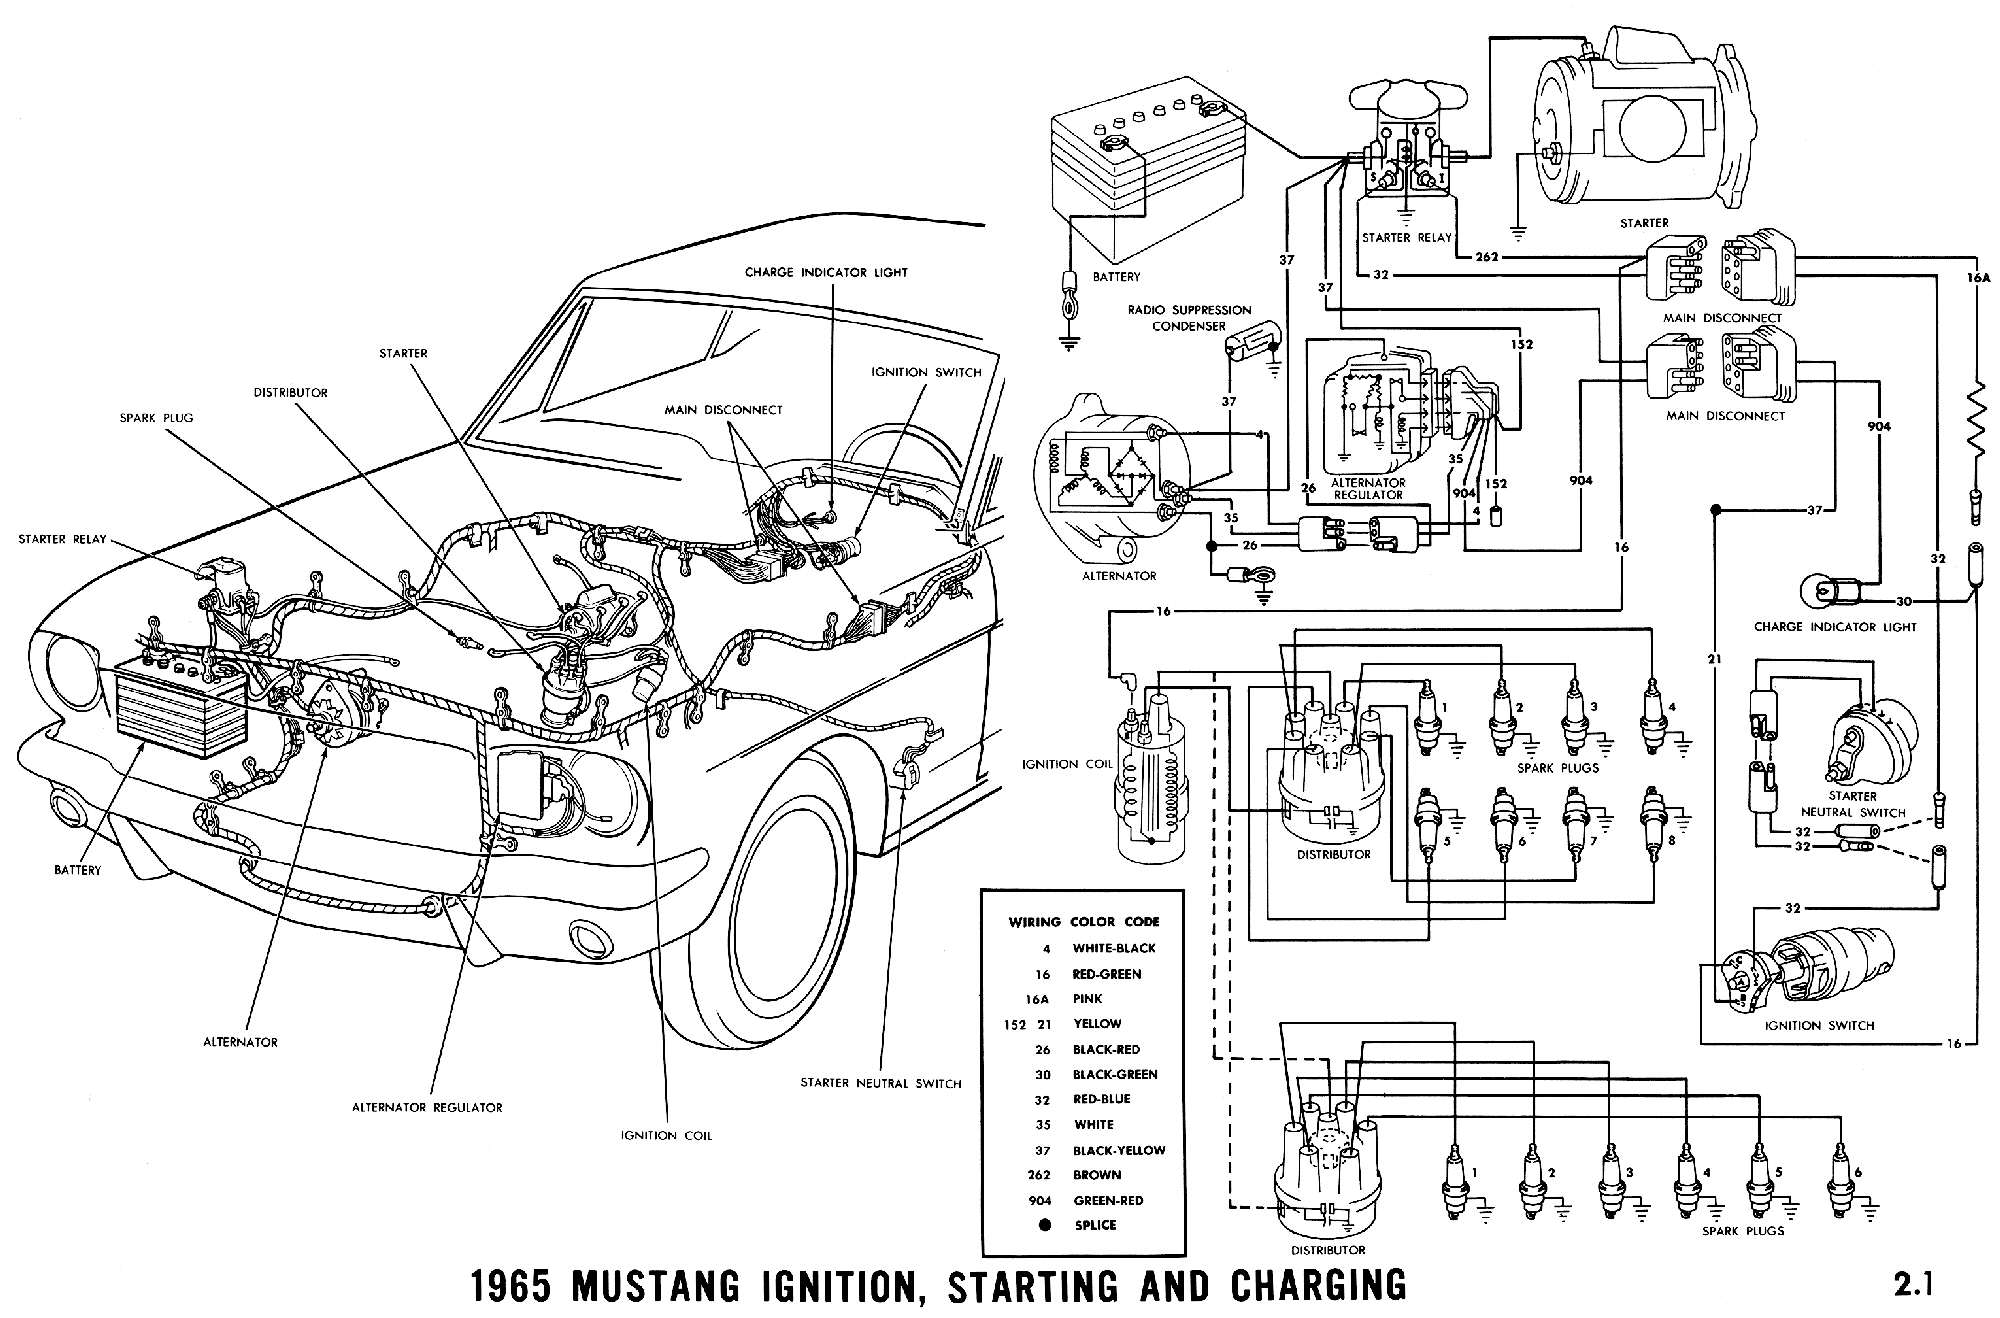 4wtmr Ford Mustang 67 Mustang Convertible Installed in addition Wiring Diagram For 1964 Mustang besides 1969 Mustang Wiring Diagram also Schematics i furthermore 10. on 65 ford f100 electrical schematic